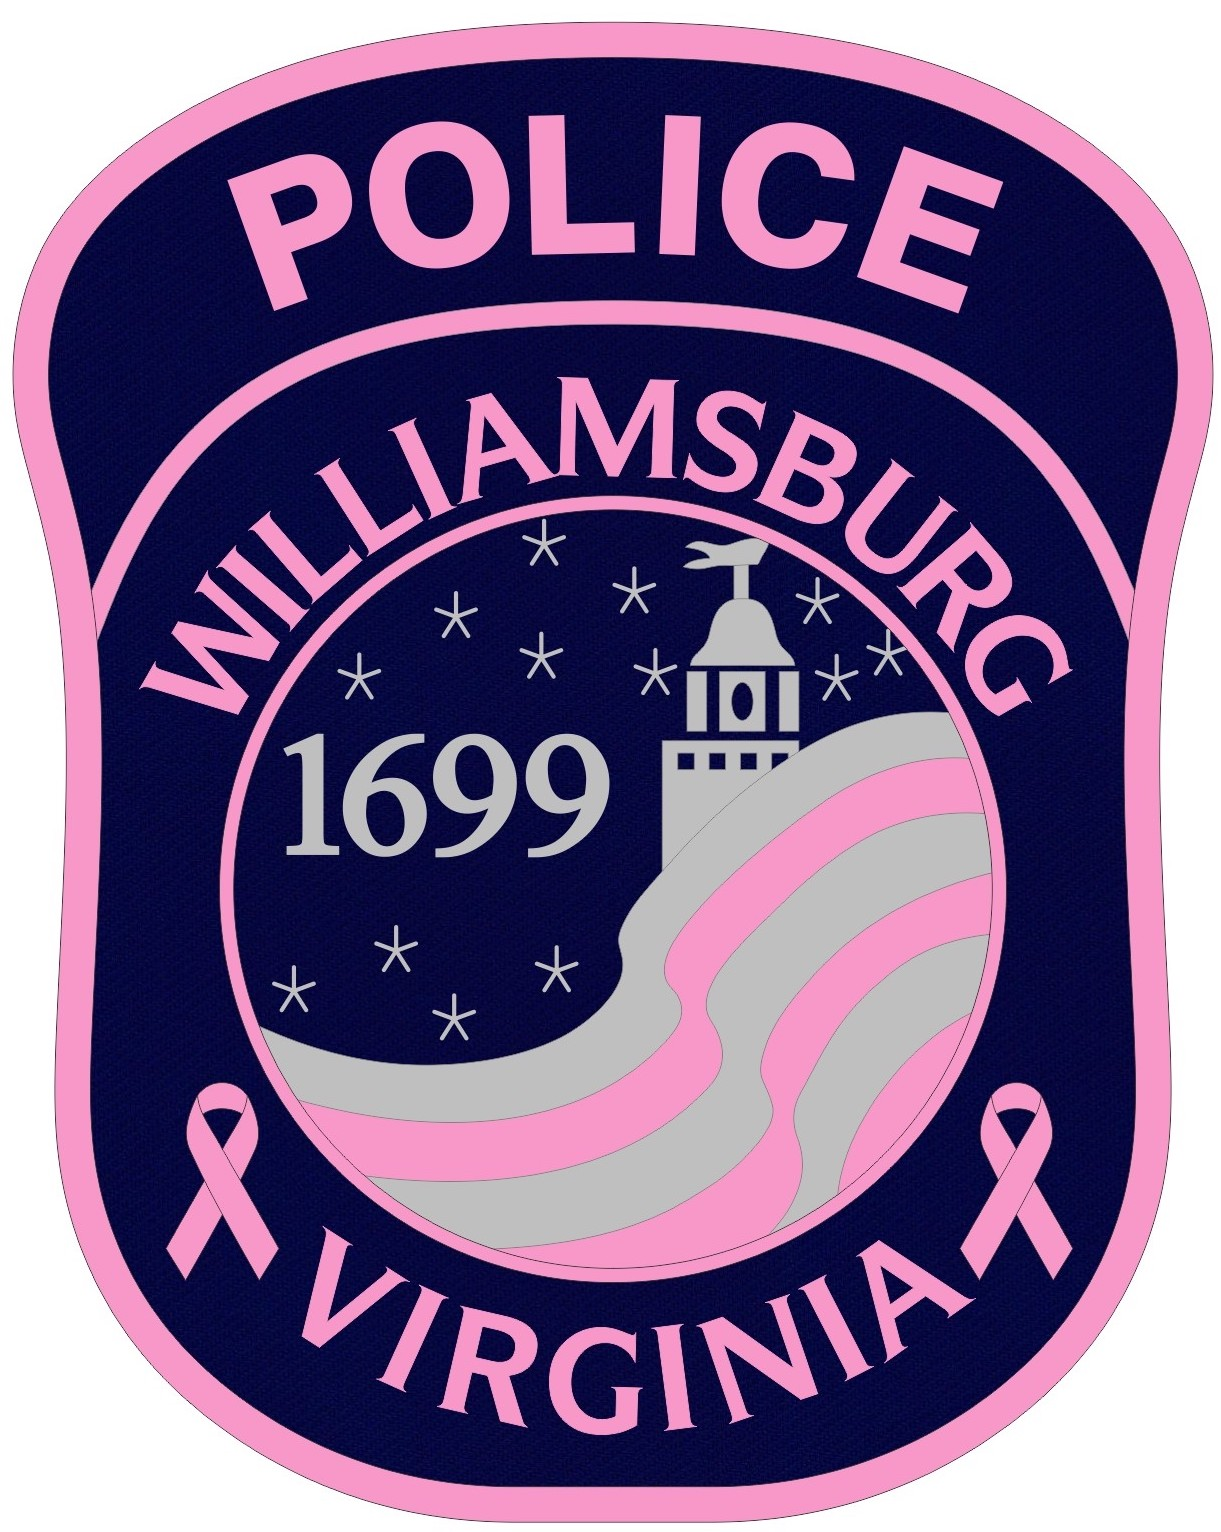 WILLIAMSBURG PD PINK VA (1).jpg